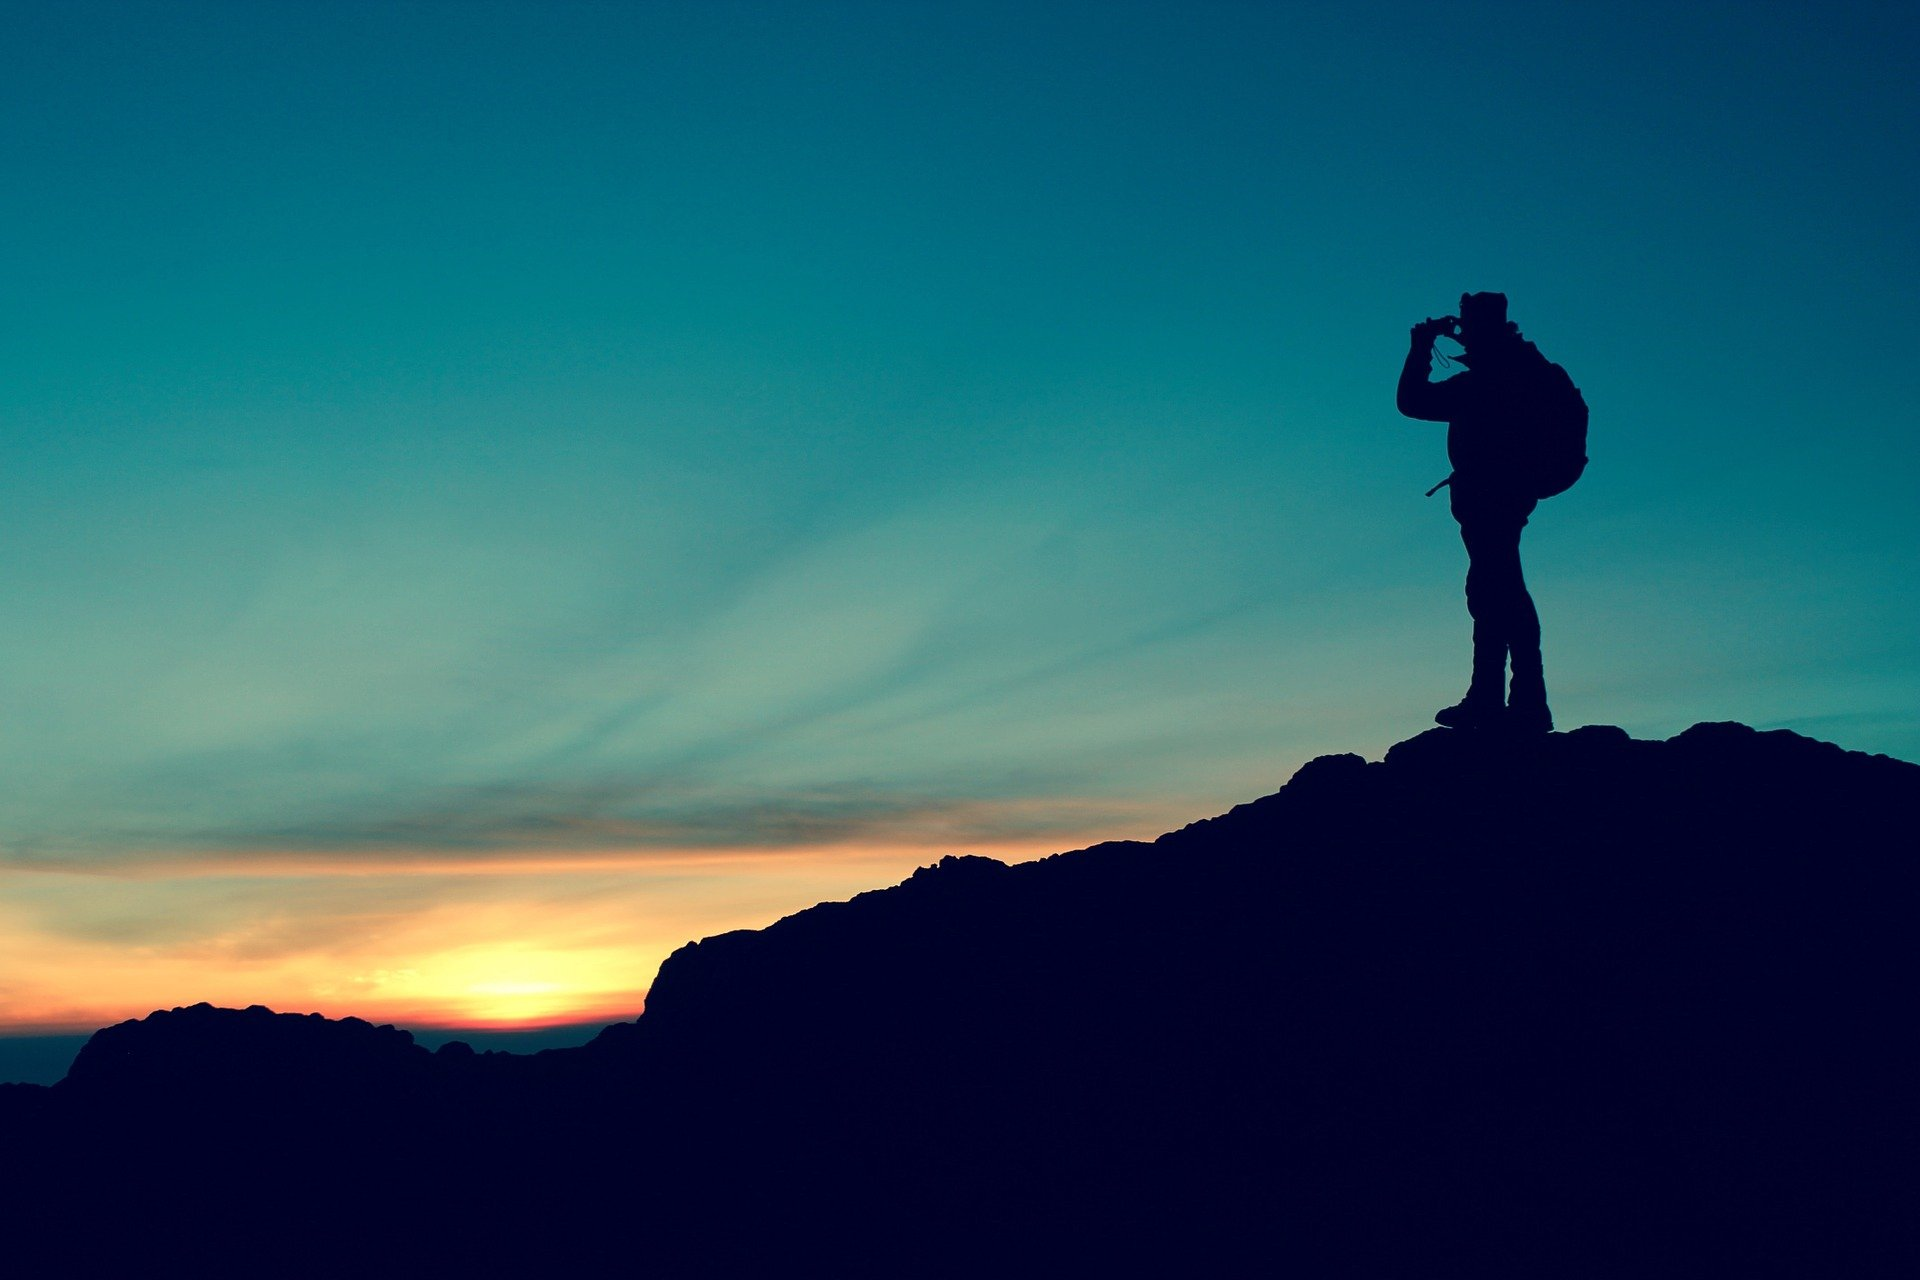 A silhouette of a hiker taking in the views atop a mountain   Photo: Pixabay/Free-Photos